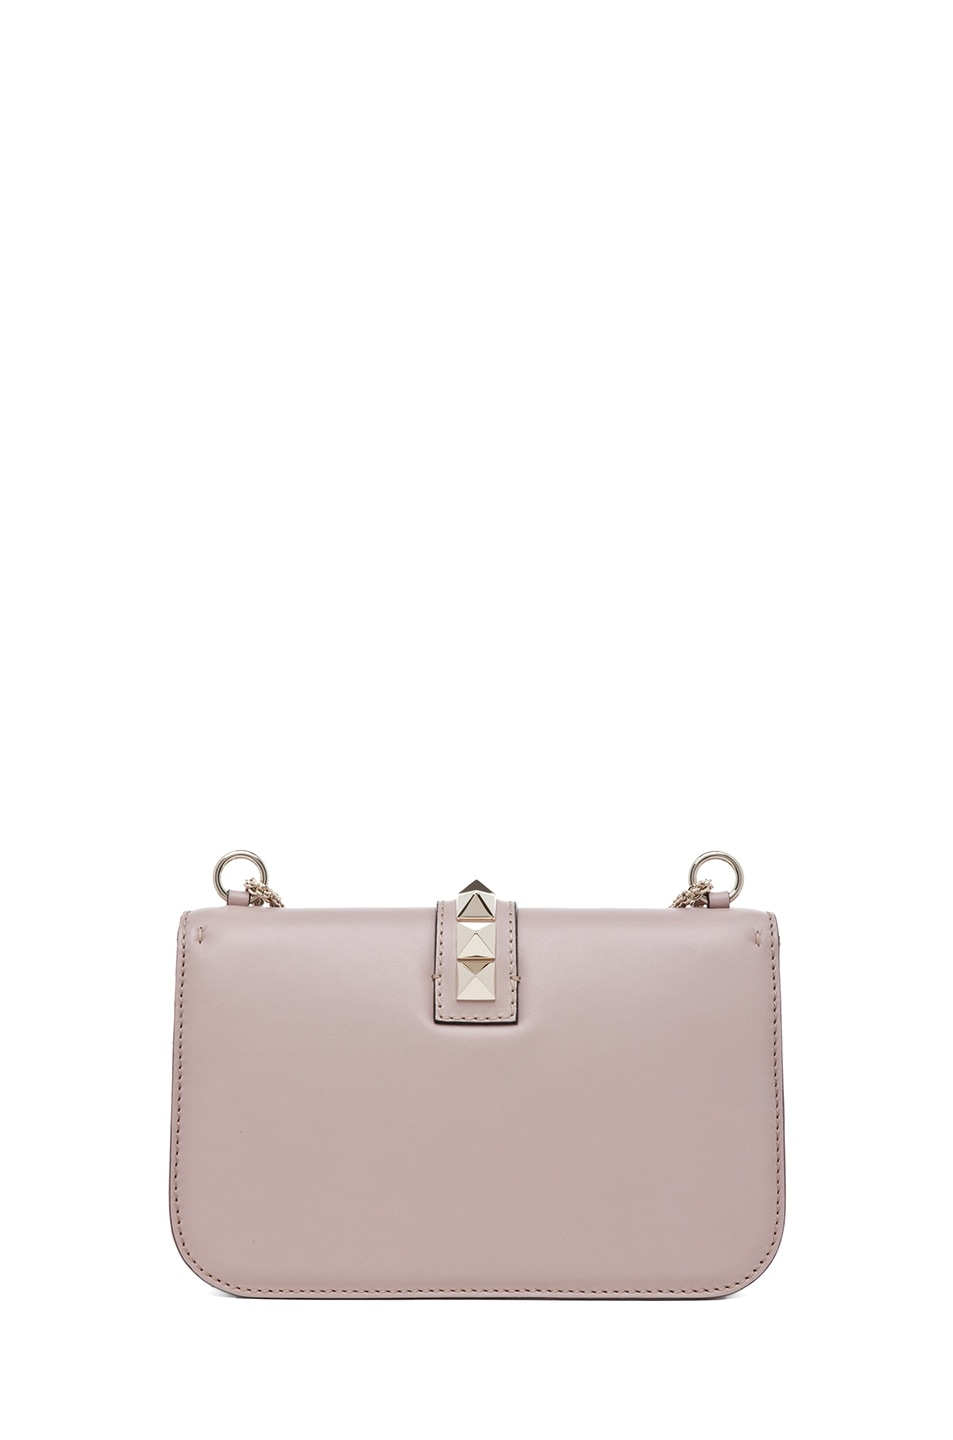 Image 2 of Valentino Medium Lock Flap Bag in Poudre